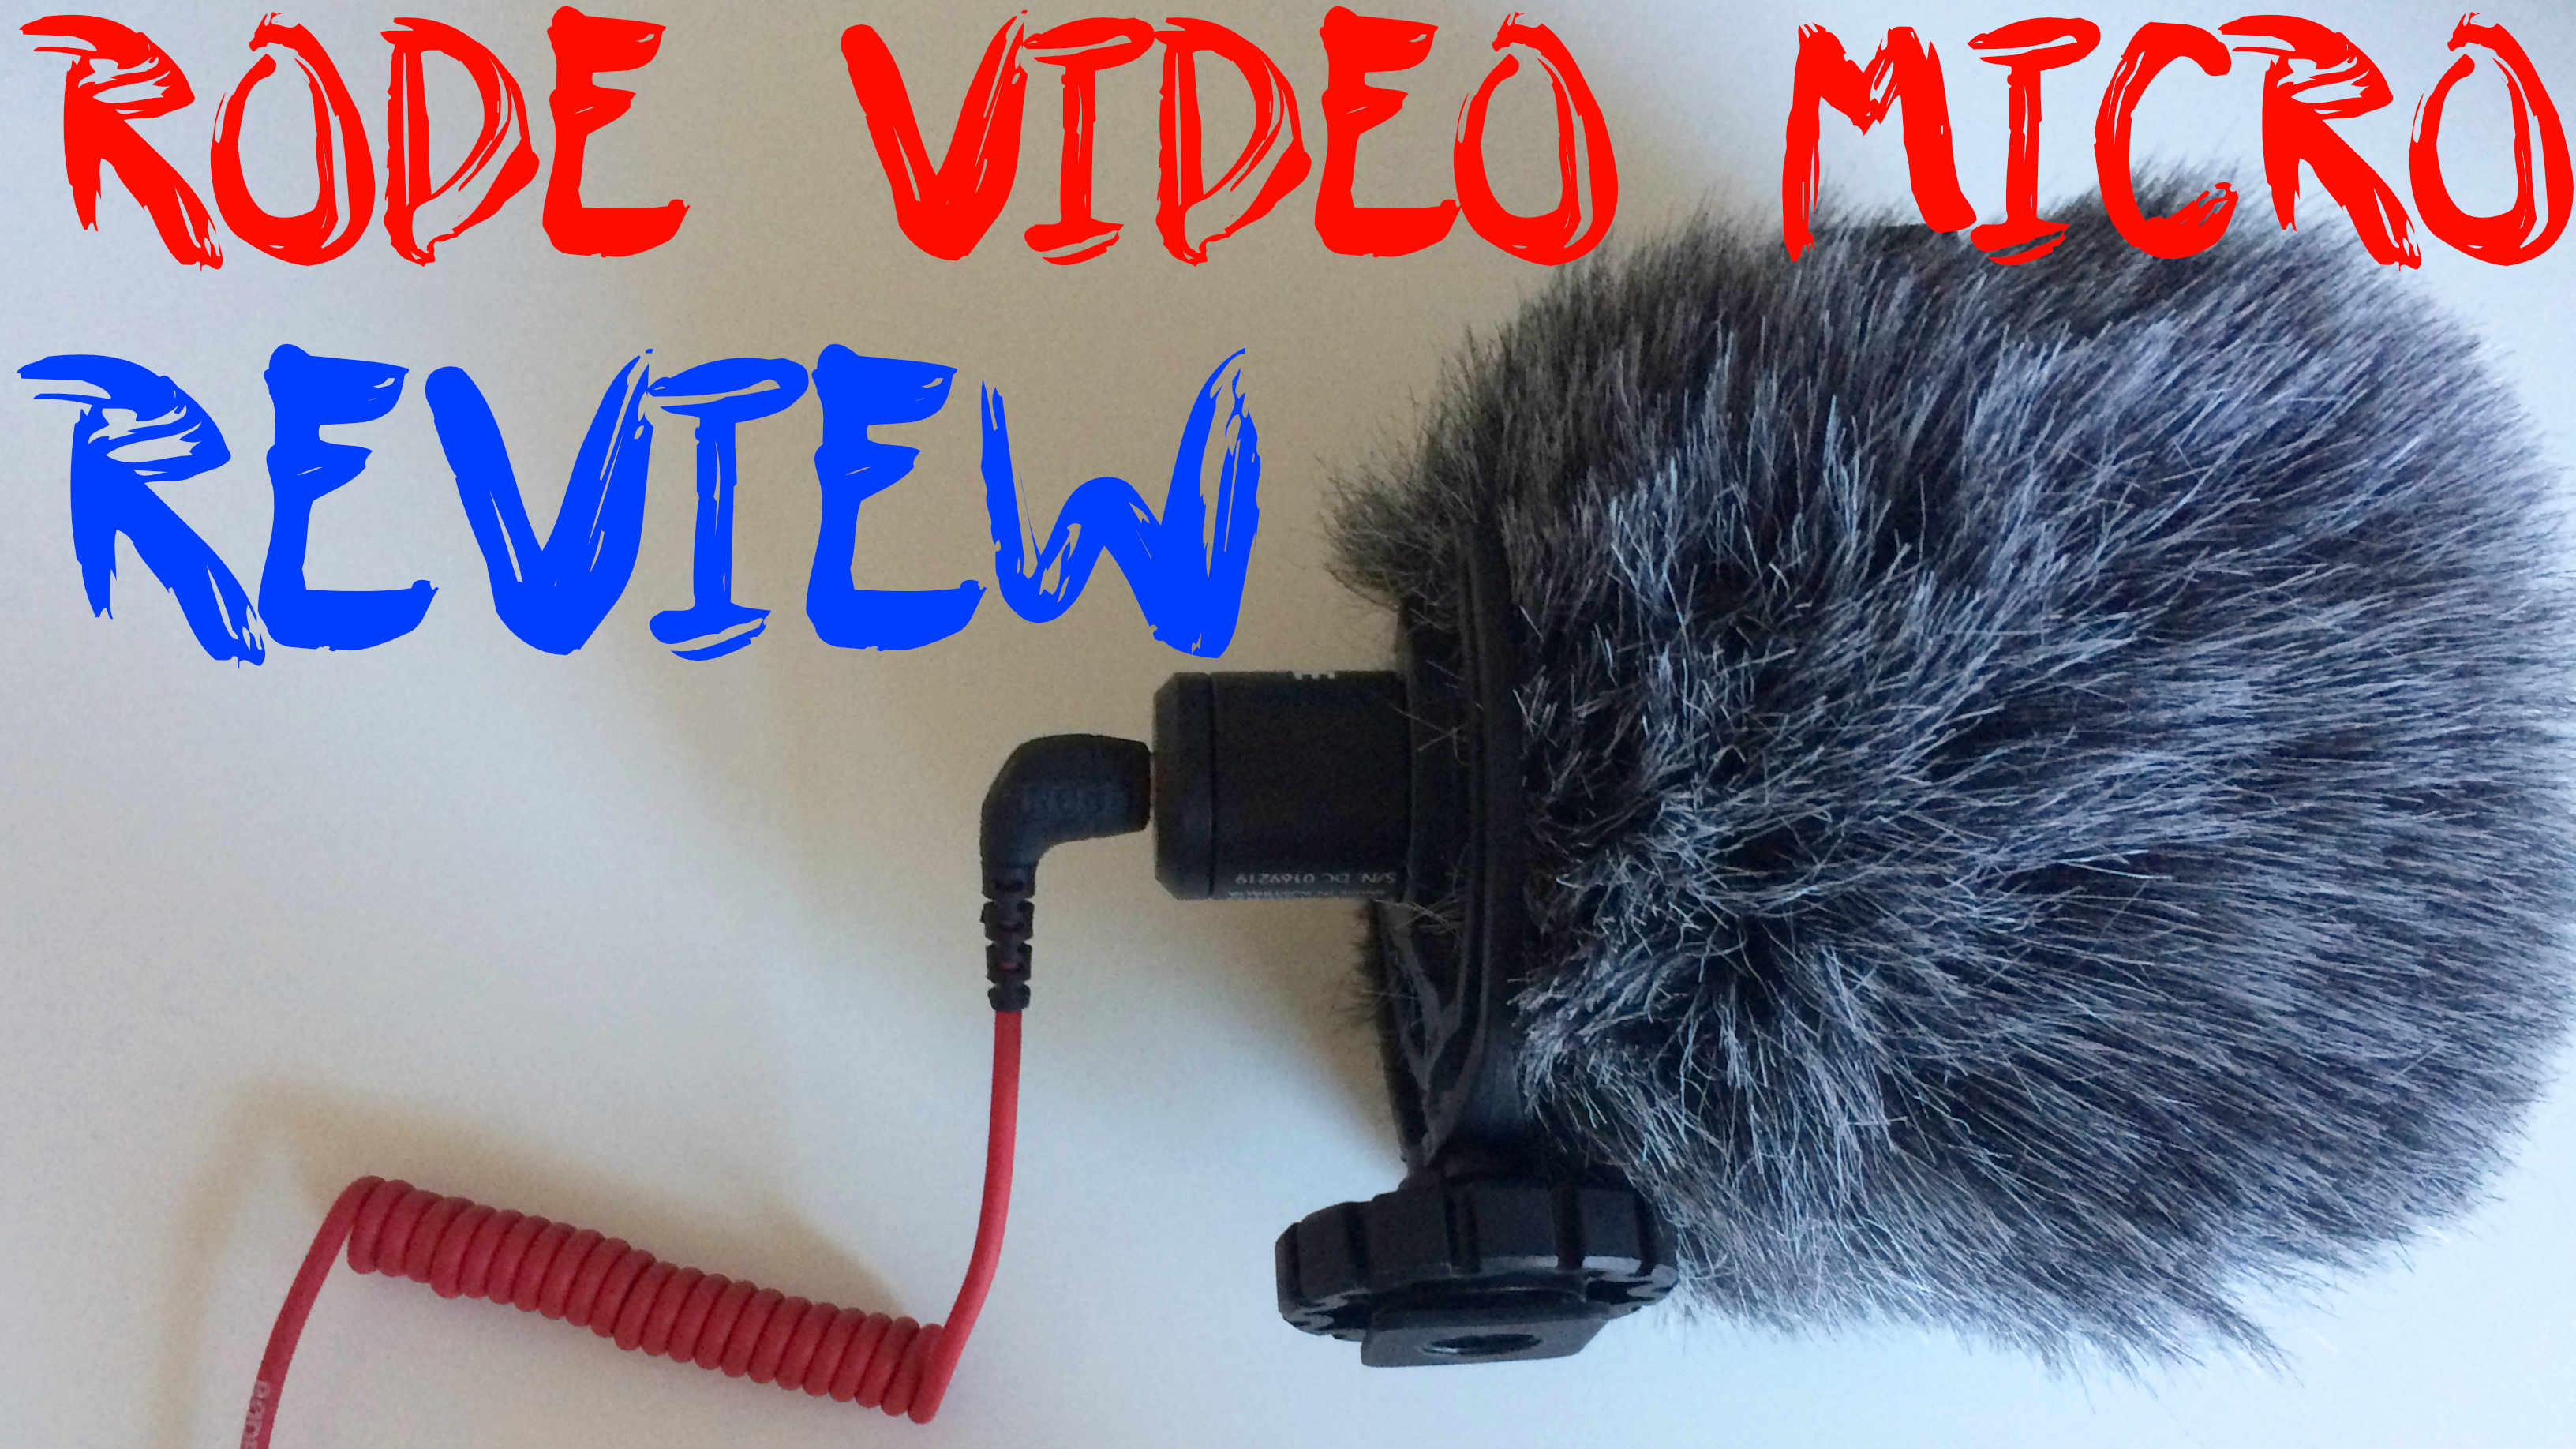 Rode Videomicro Review 2018 Good Enough For Filmmaking Mic Video Micro